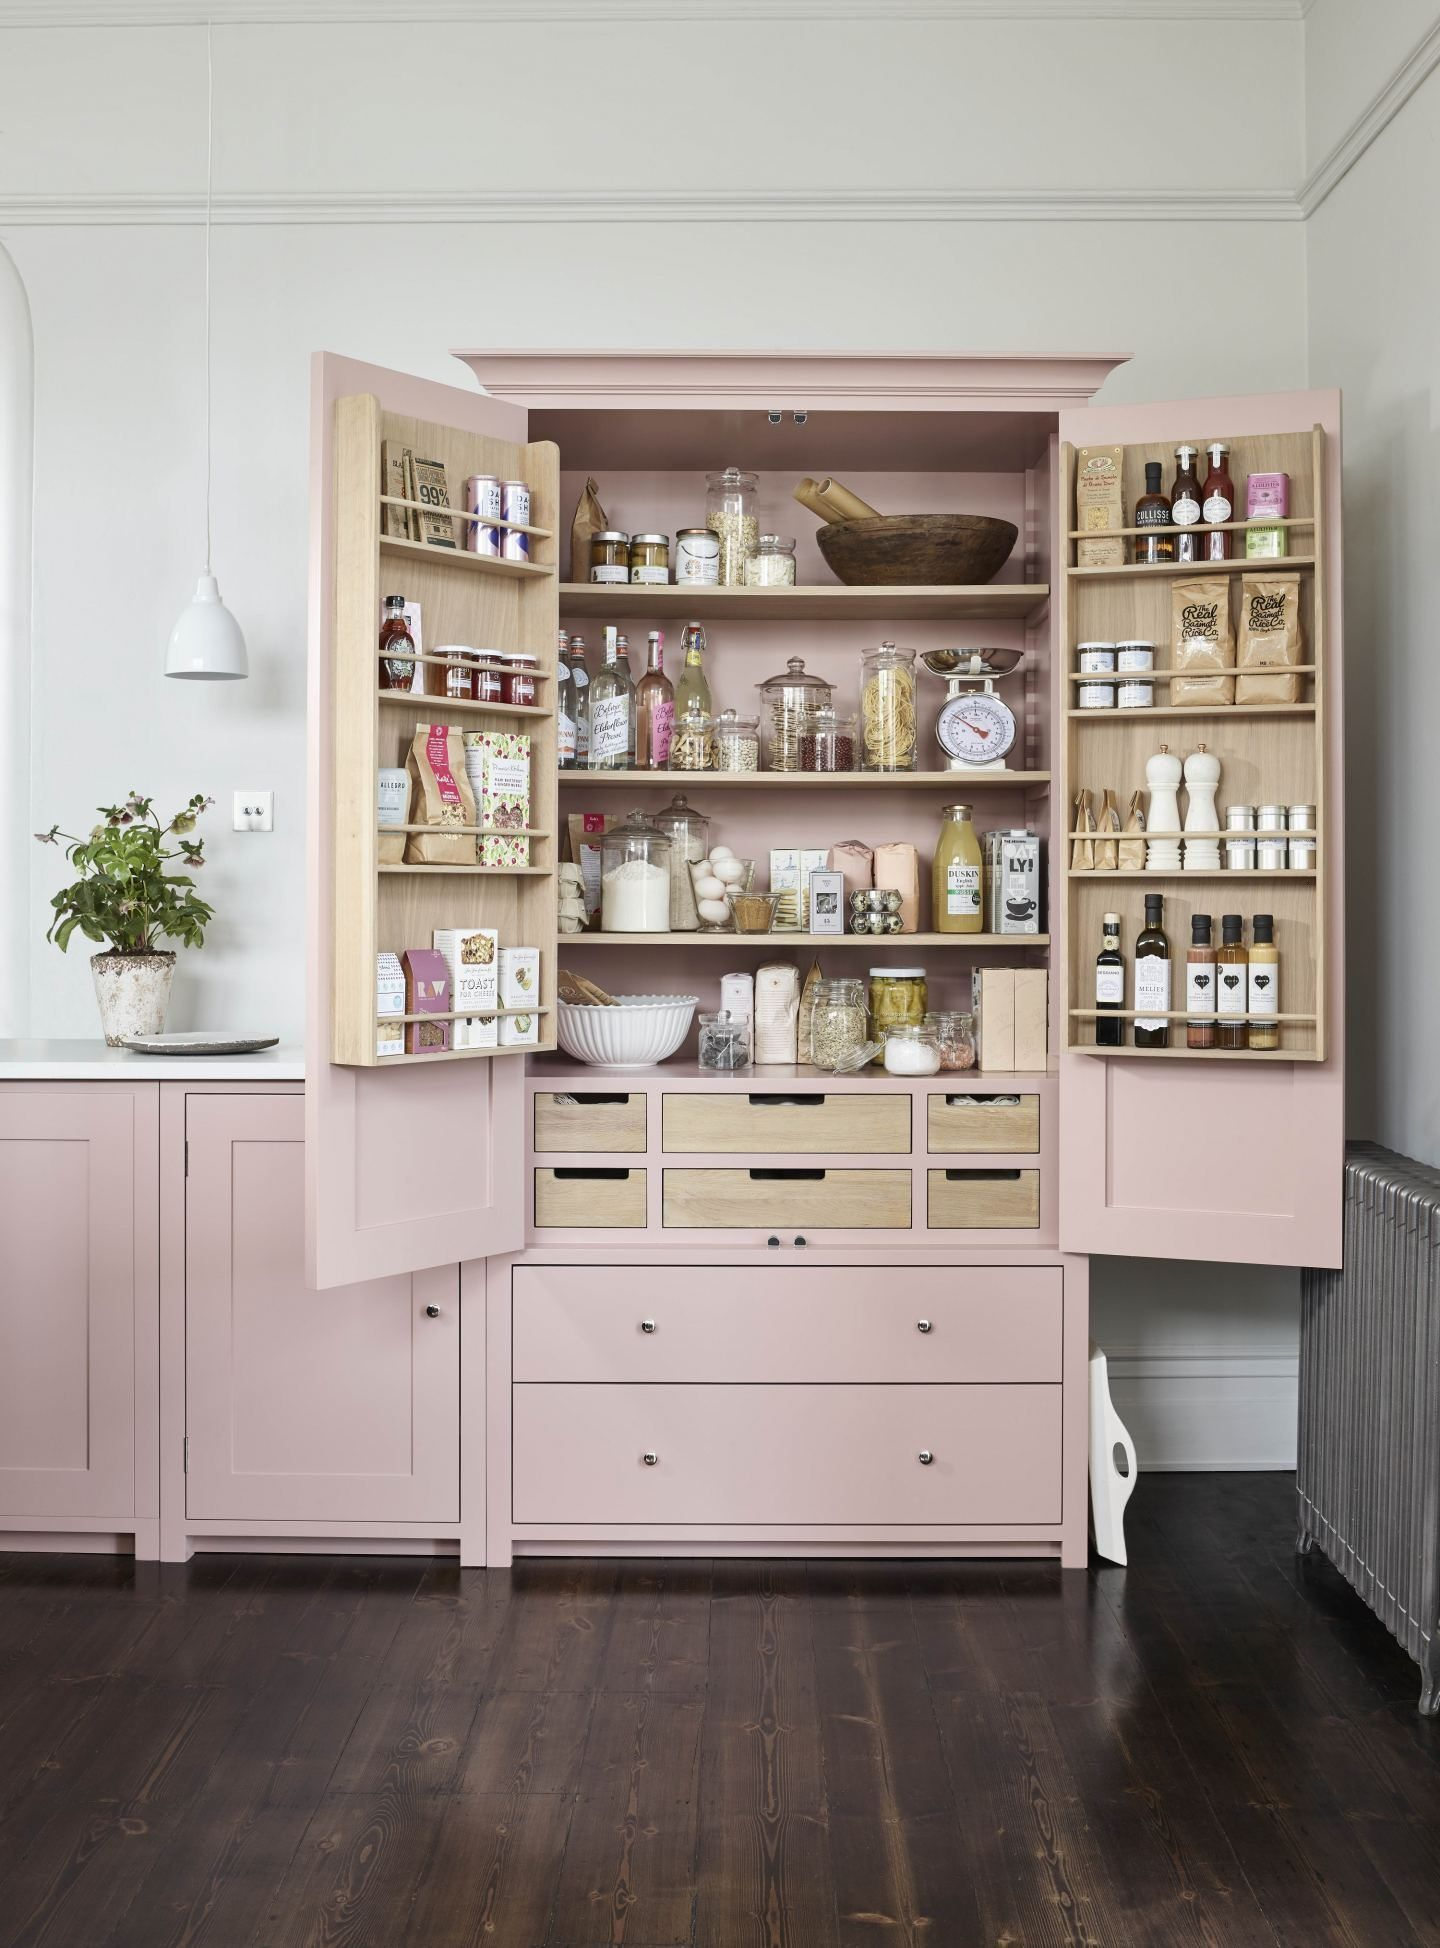 Trend : Colourful Kitchen Cabinetry